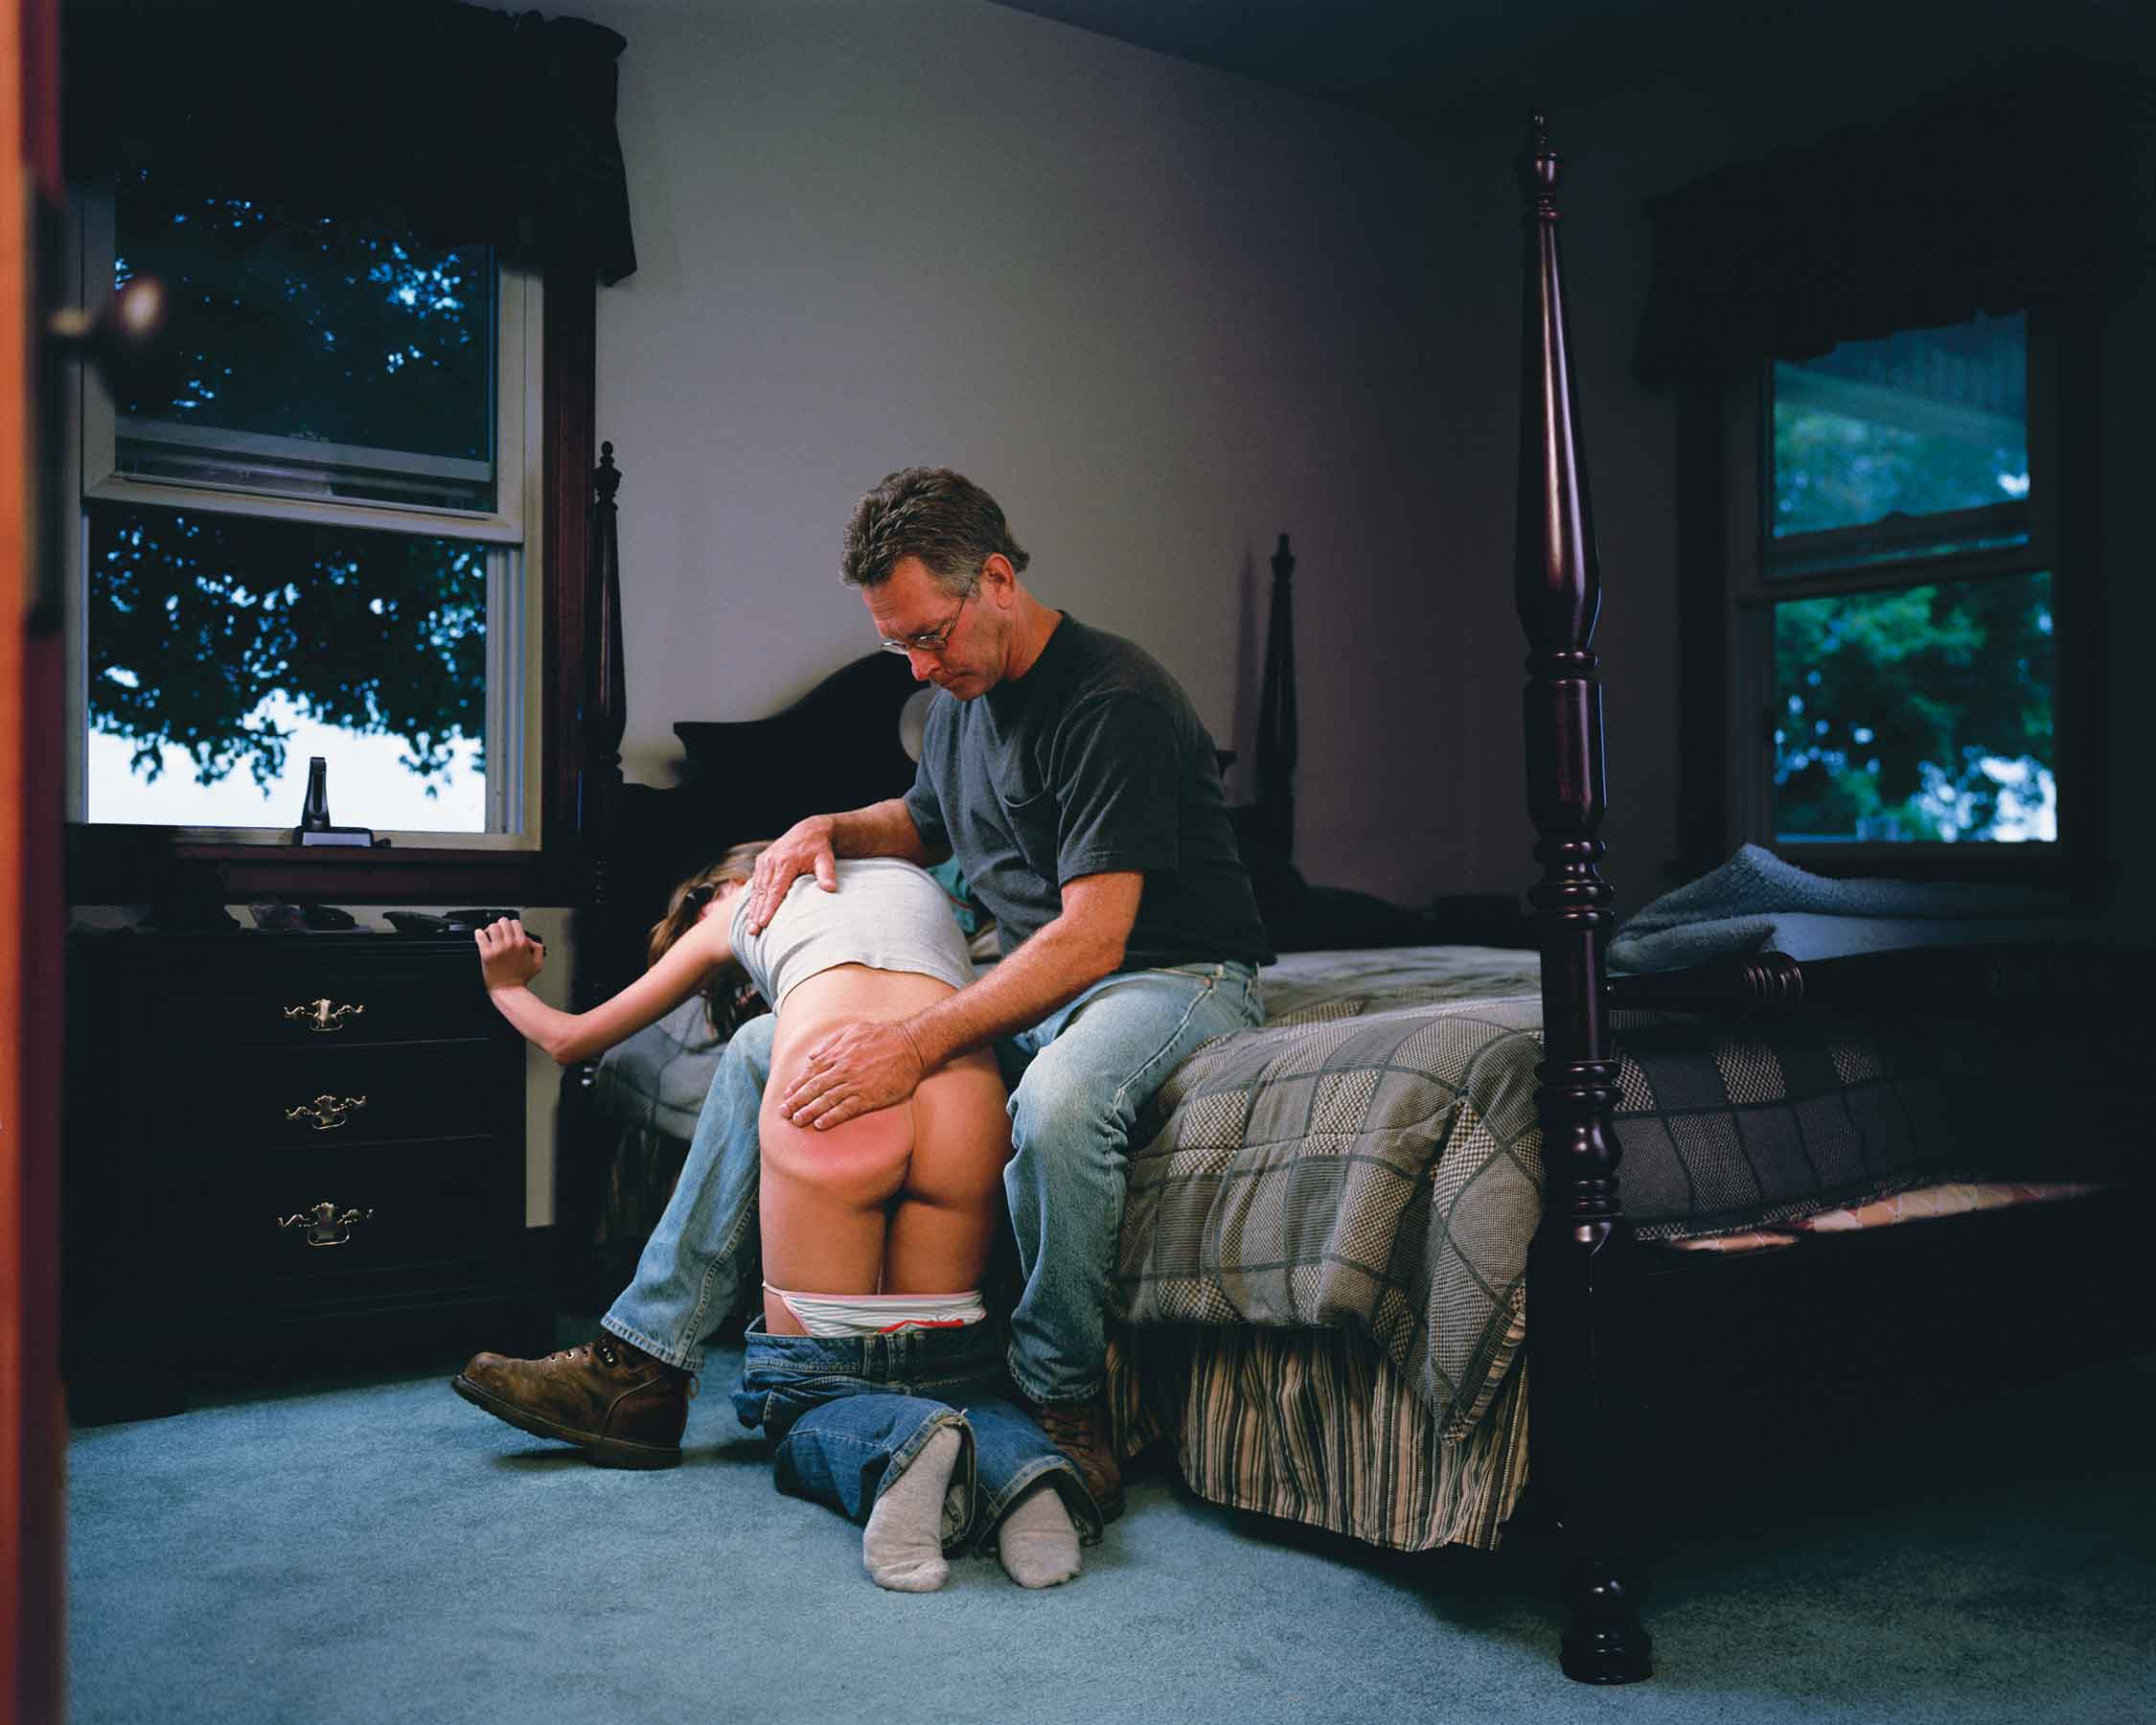 "Angela Strassheim, Untitled (The Spanking), 2006, archival pigment print, 30""x40"" (from the Pause series). All images courtesy of the artist."